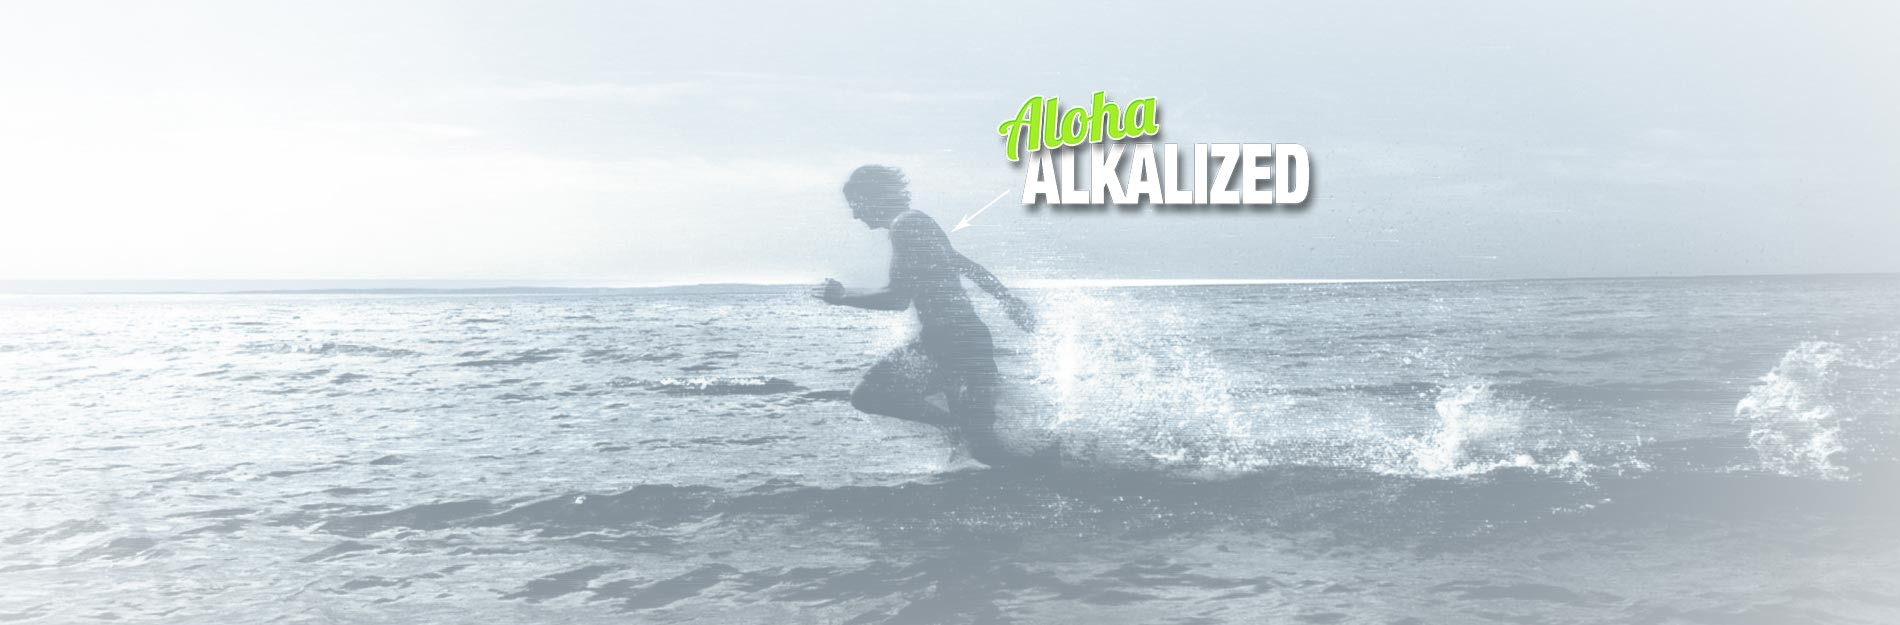 Alkalized_Slide_1900x625